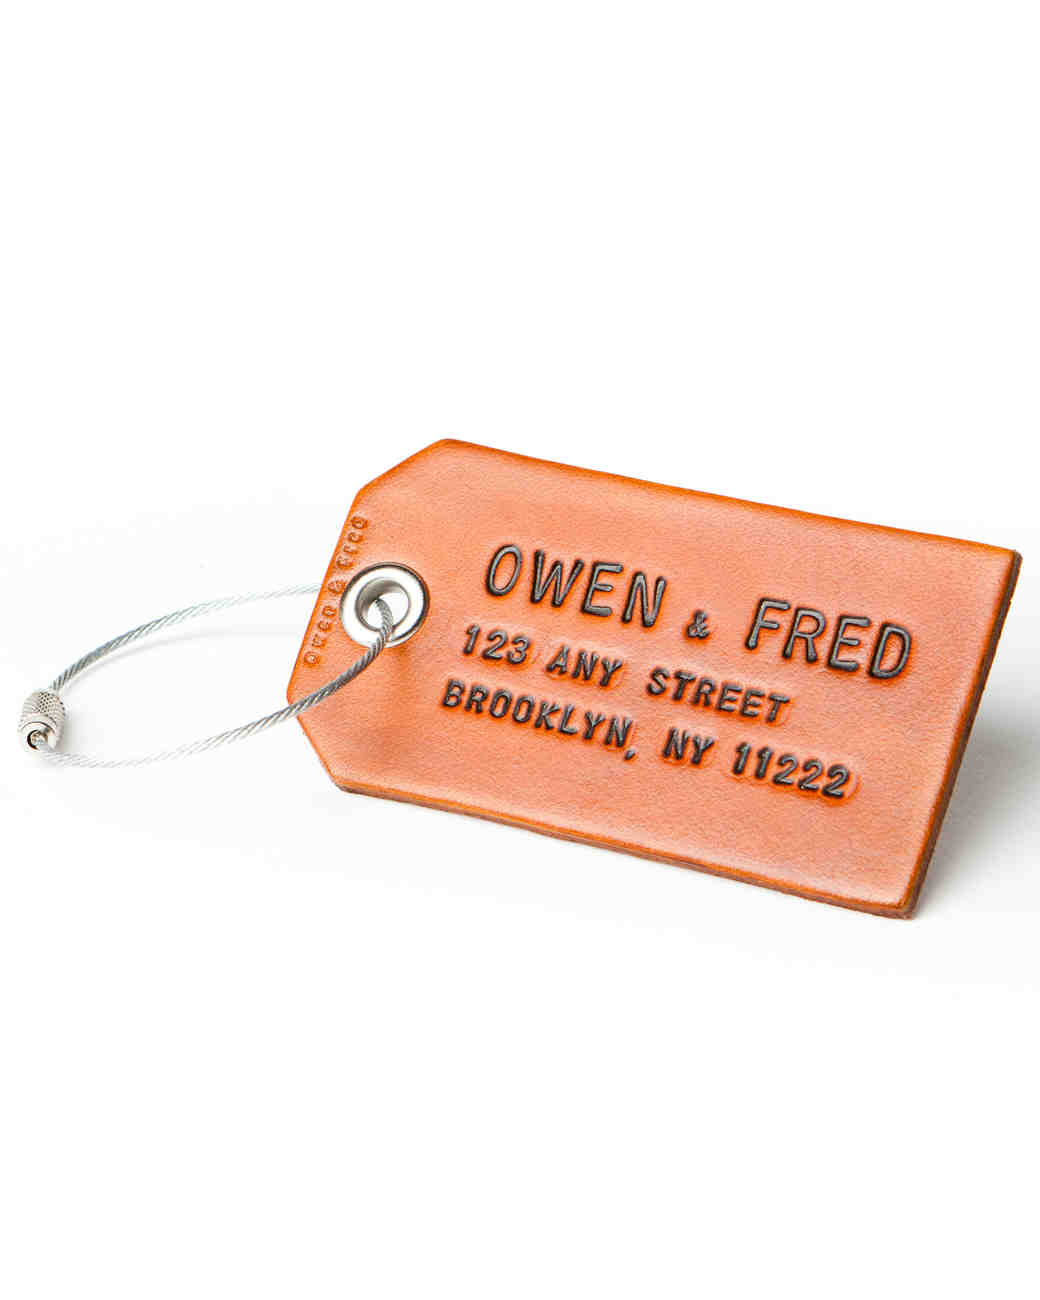 groomsmen-gift-ideas-owen-fred-luggage-tags-0614.jpg